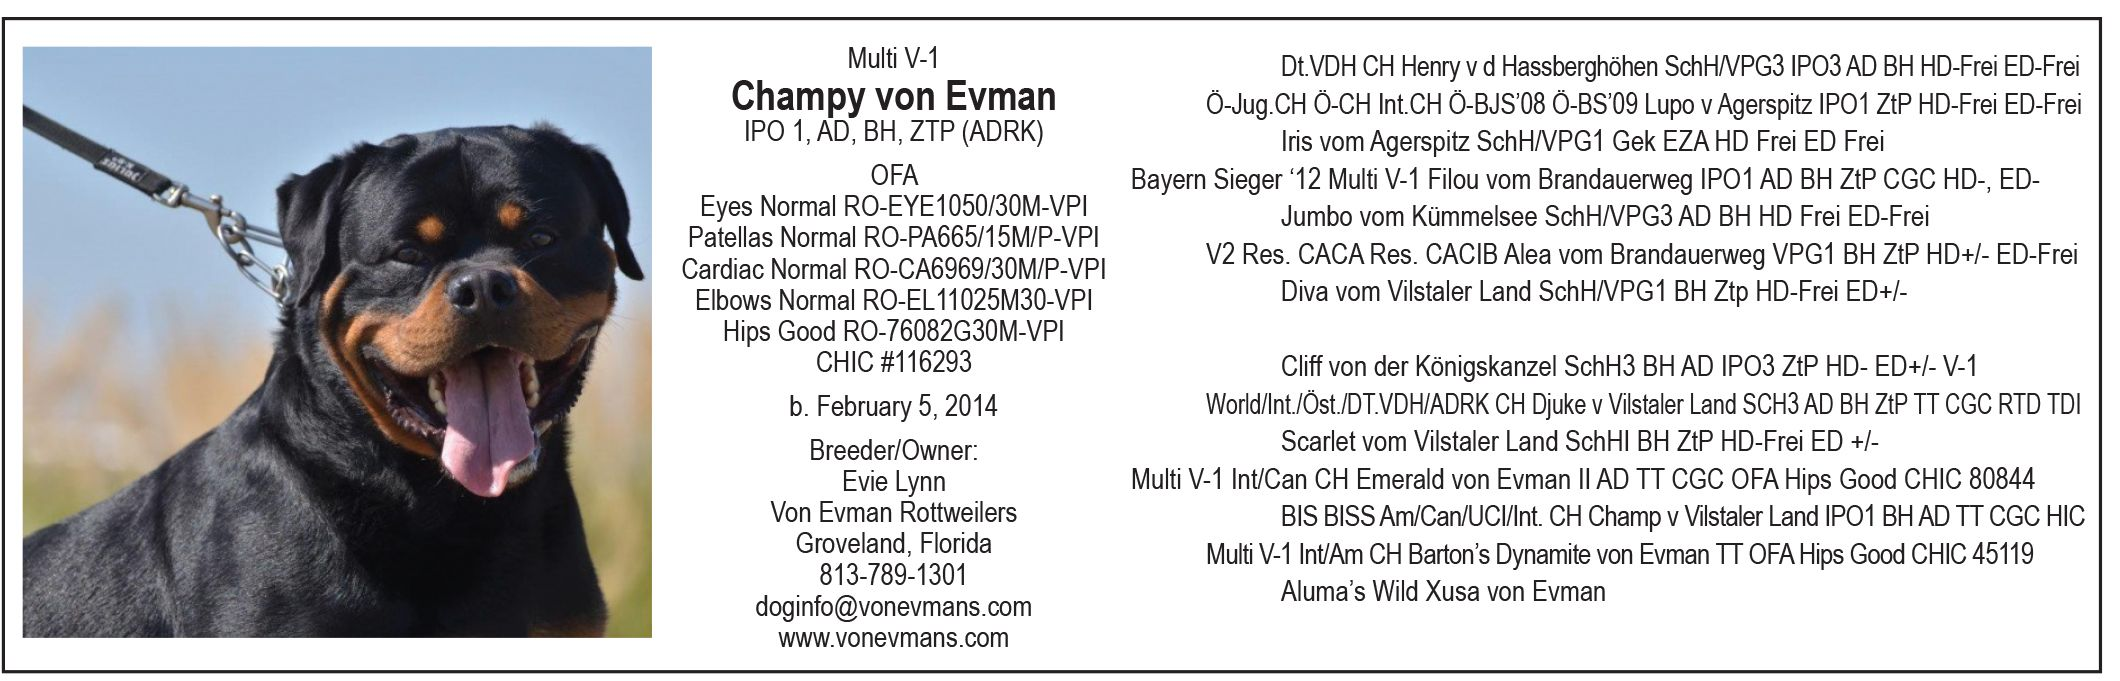 Available At Stud Multi V1 Champy Von Evman Ipo 1 Ad Bh Ztp Adrk